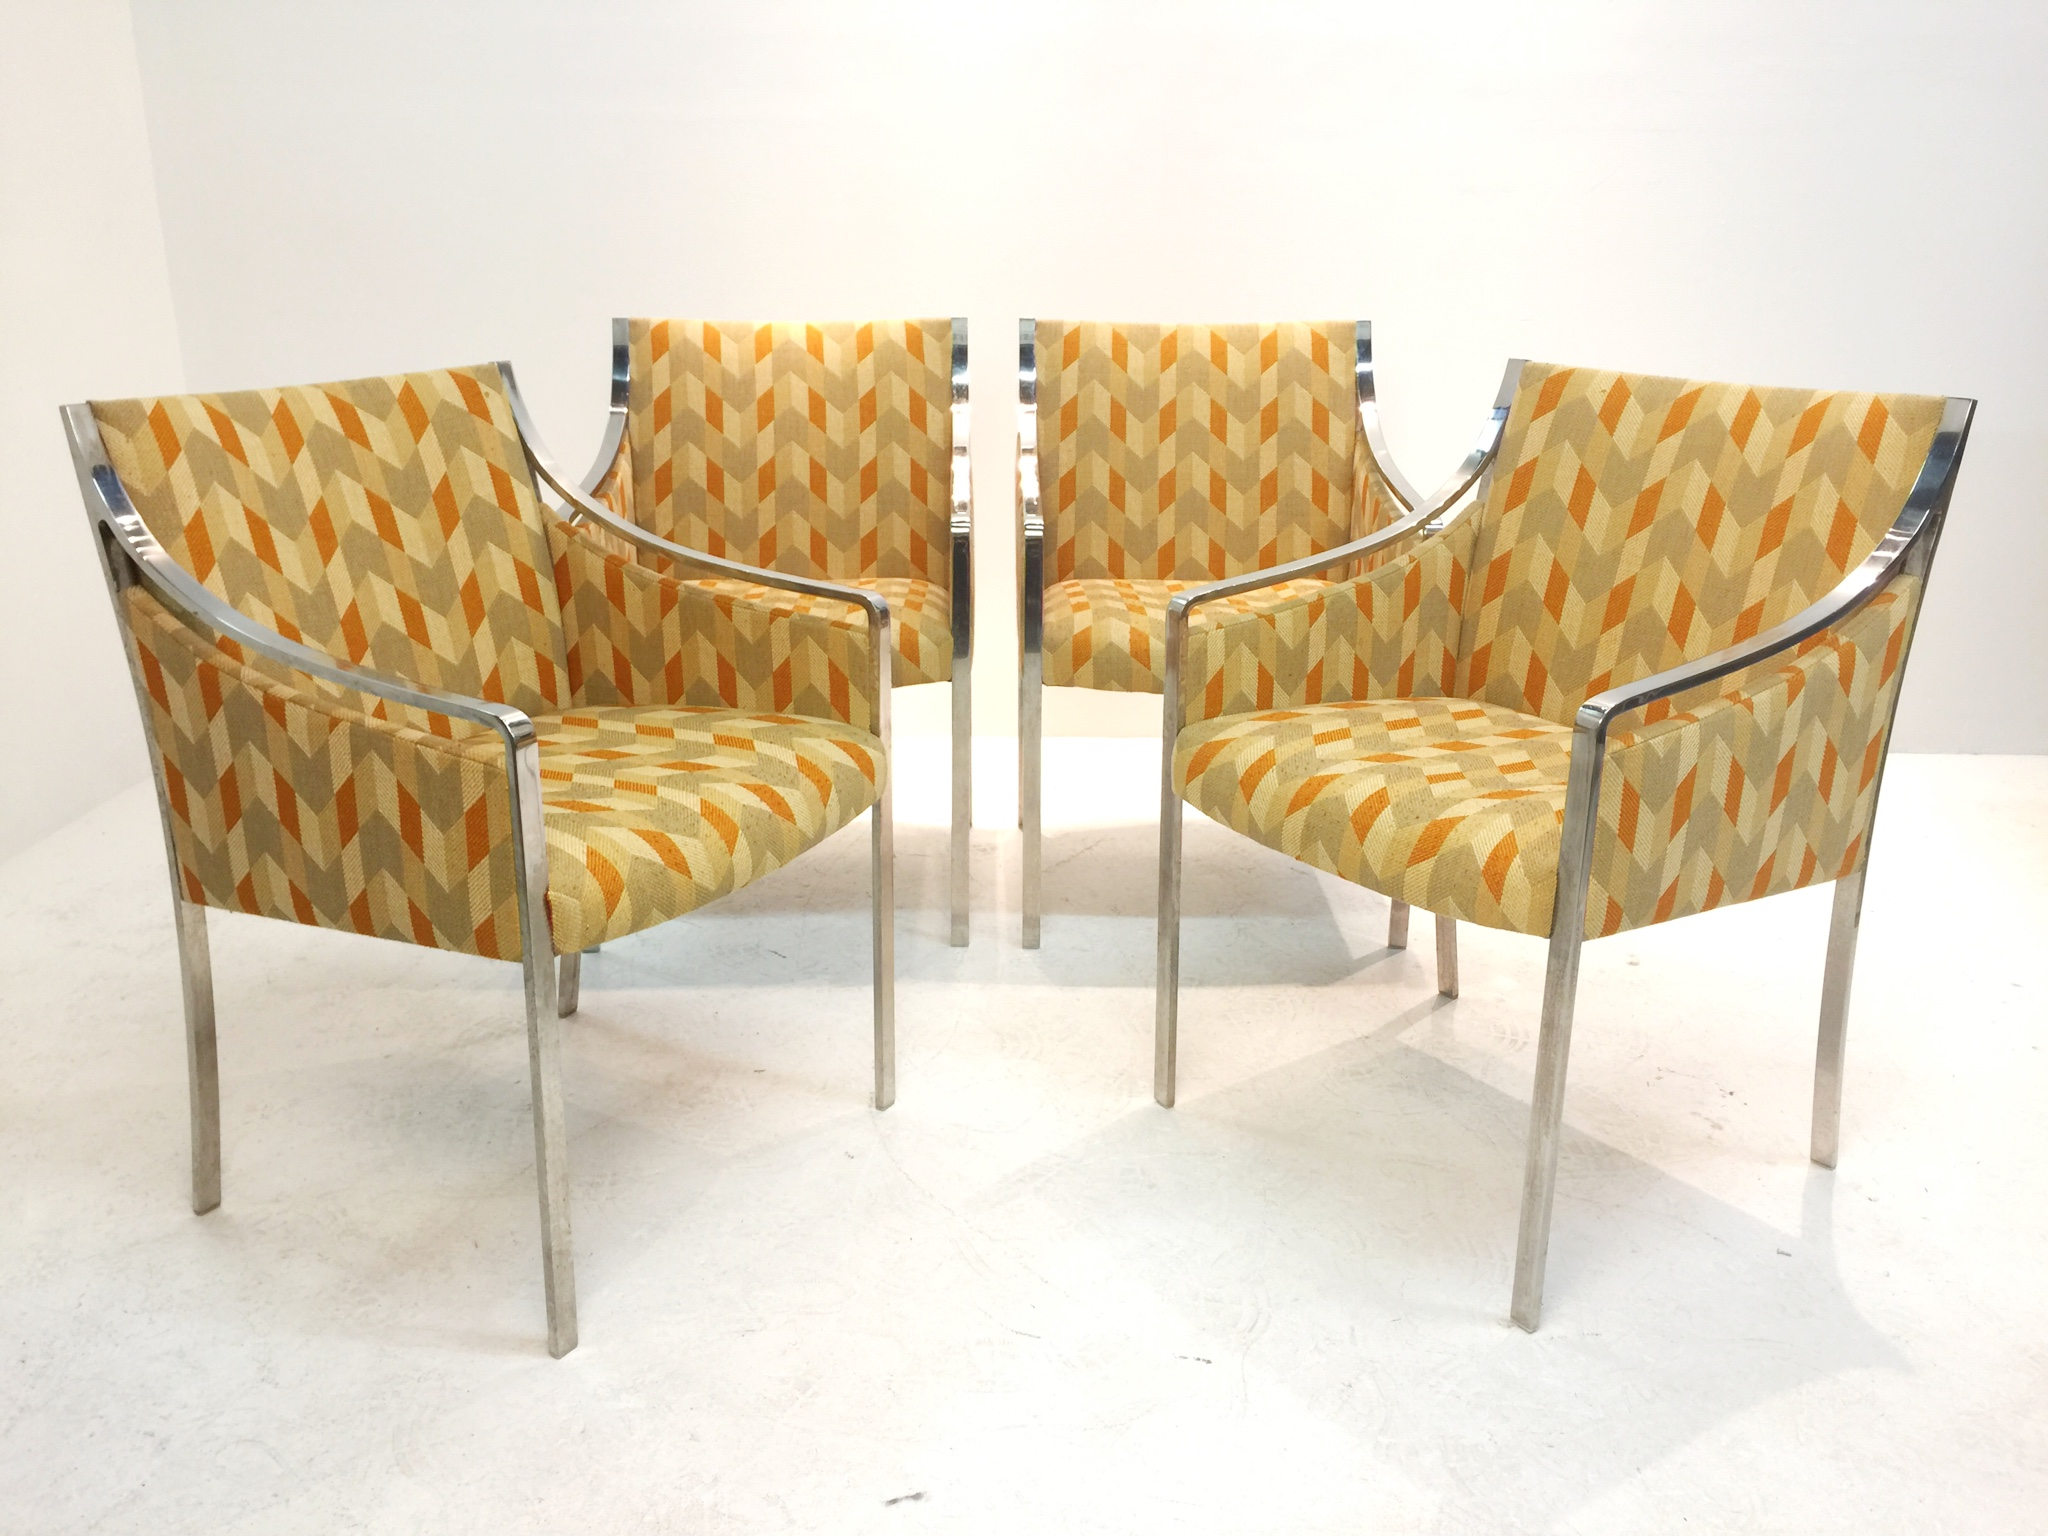 A Set Of Four Bert England Chairs For Stow Davis. Chairs Have Original  Vintage,